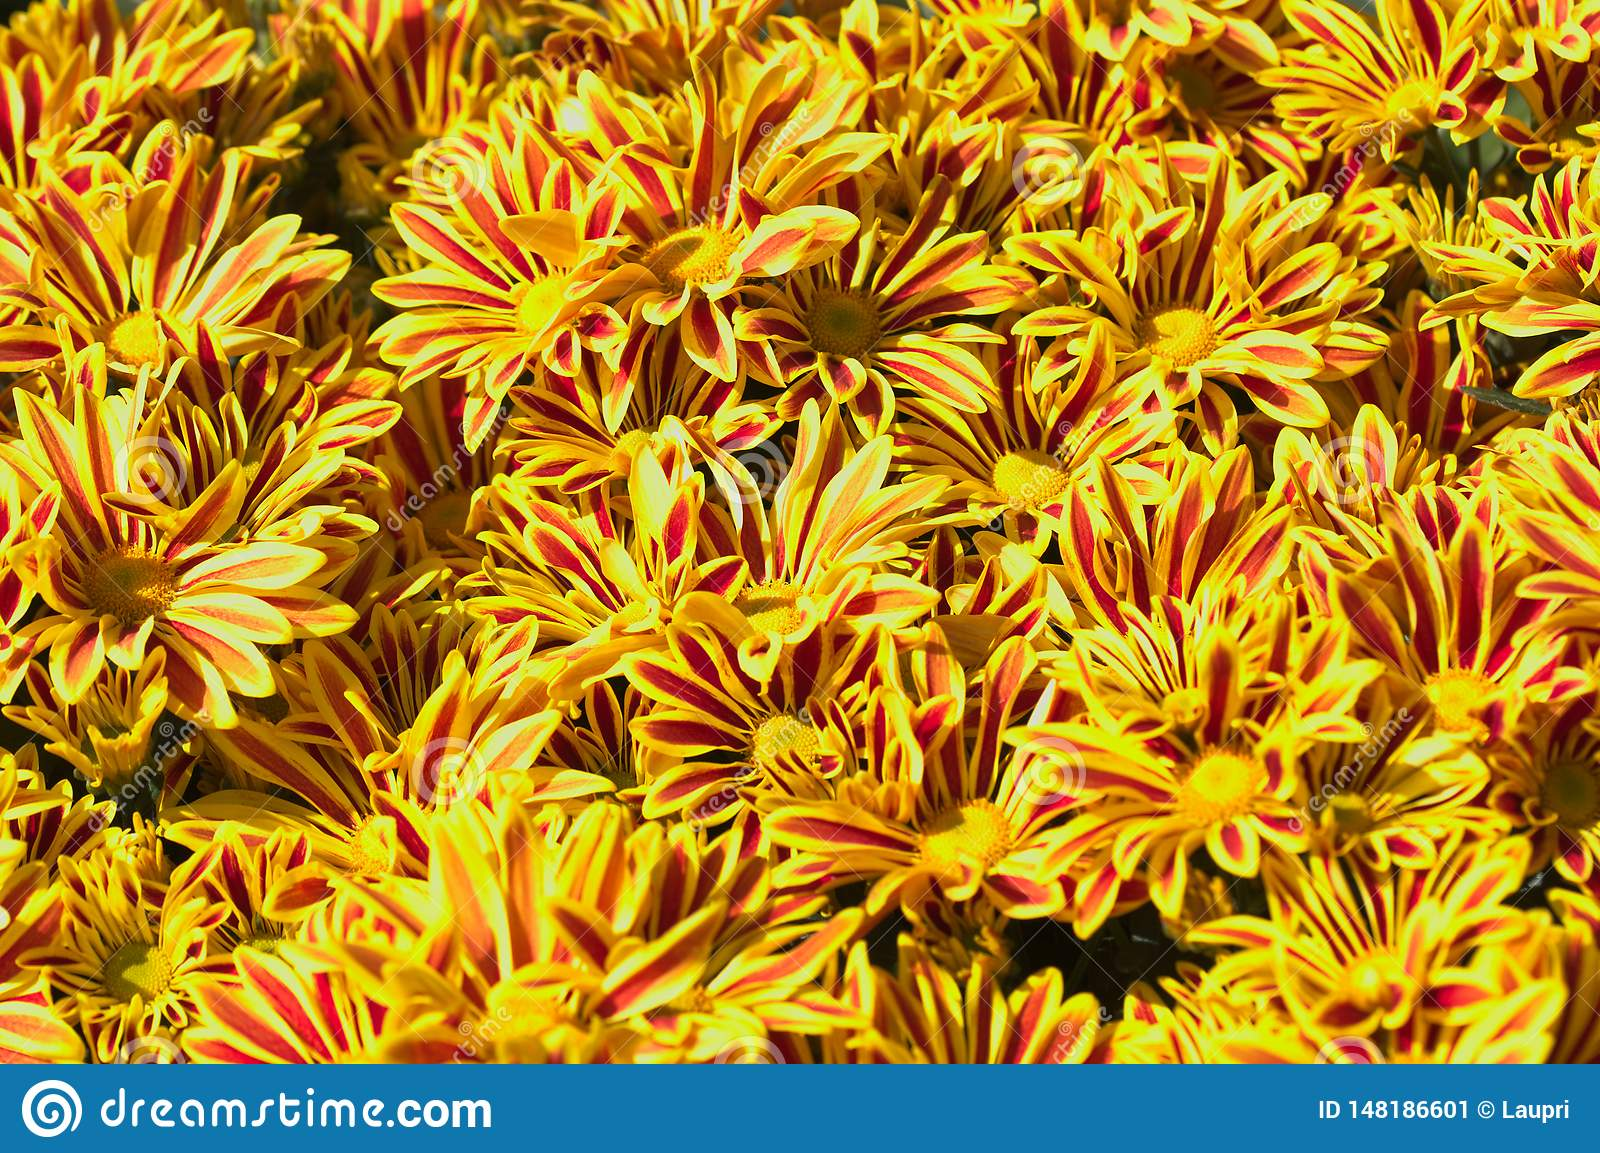 Close-up of some yellow daisies with reddish stripes